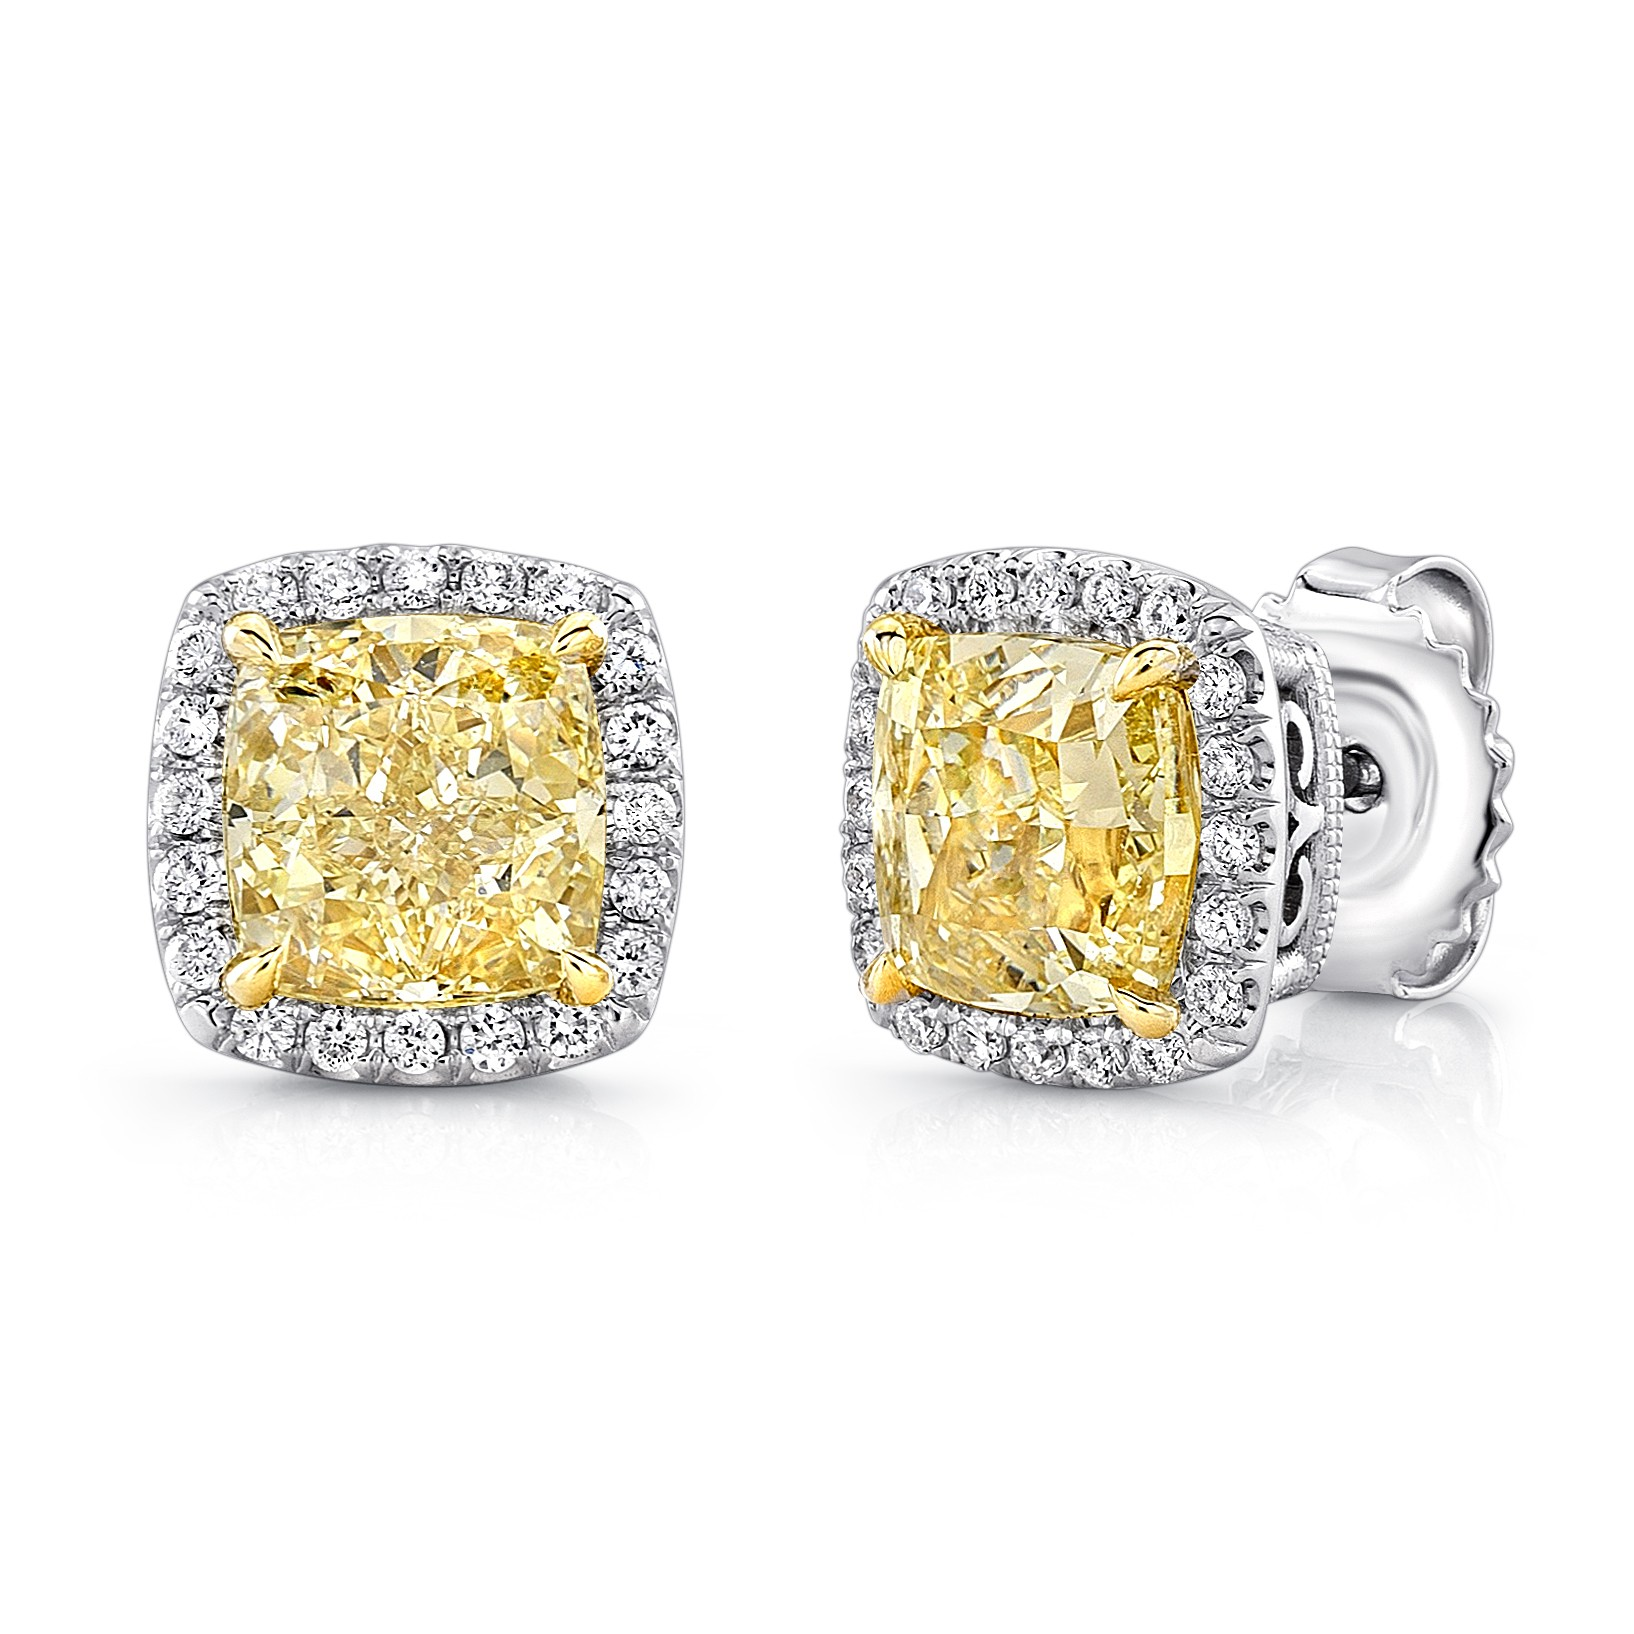 ... Yellow Diamond Halo Stud Earrings, in 18K White and Yellow Gold Yellow Diamond Stud Earrings